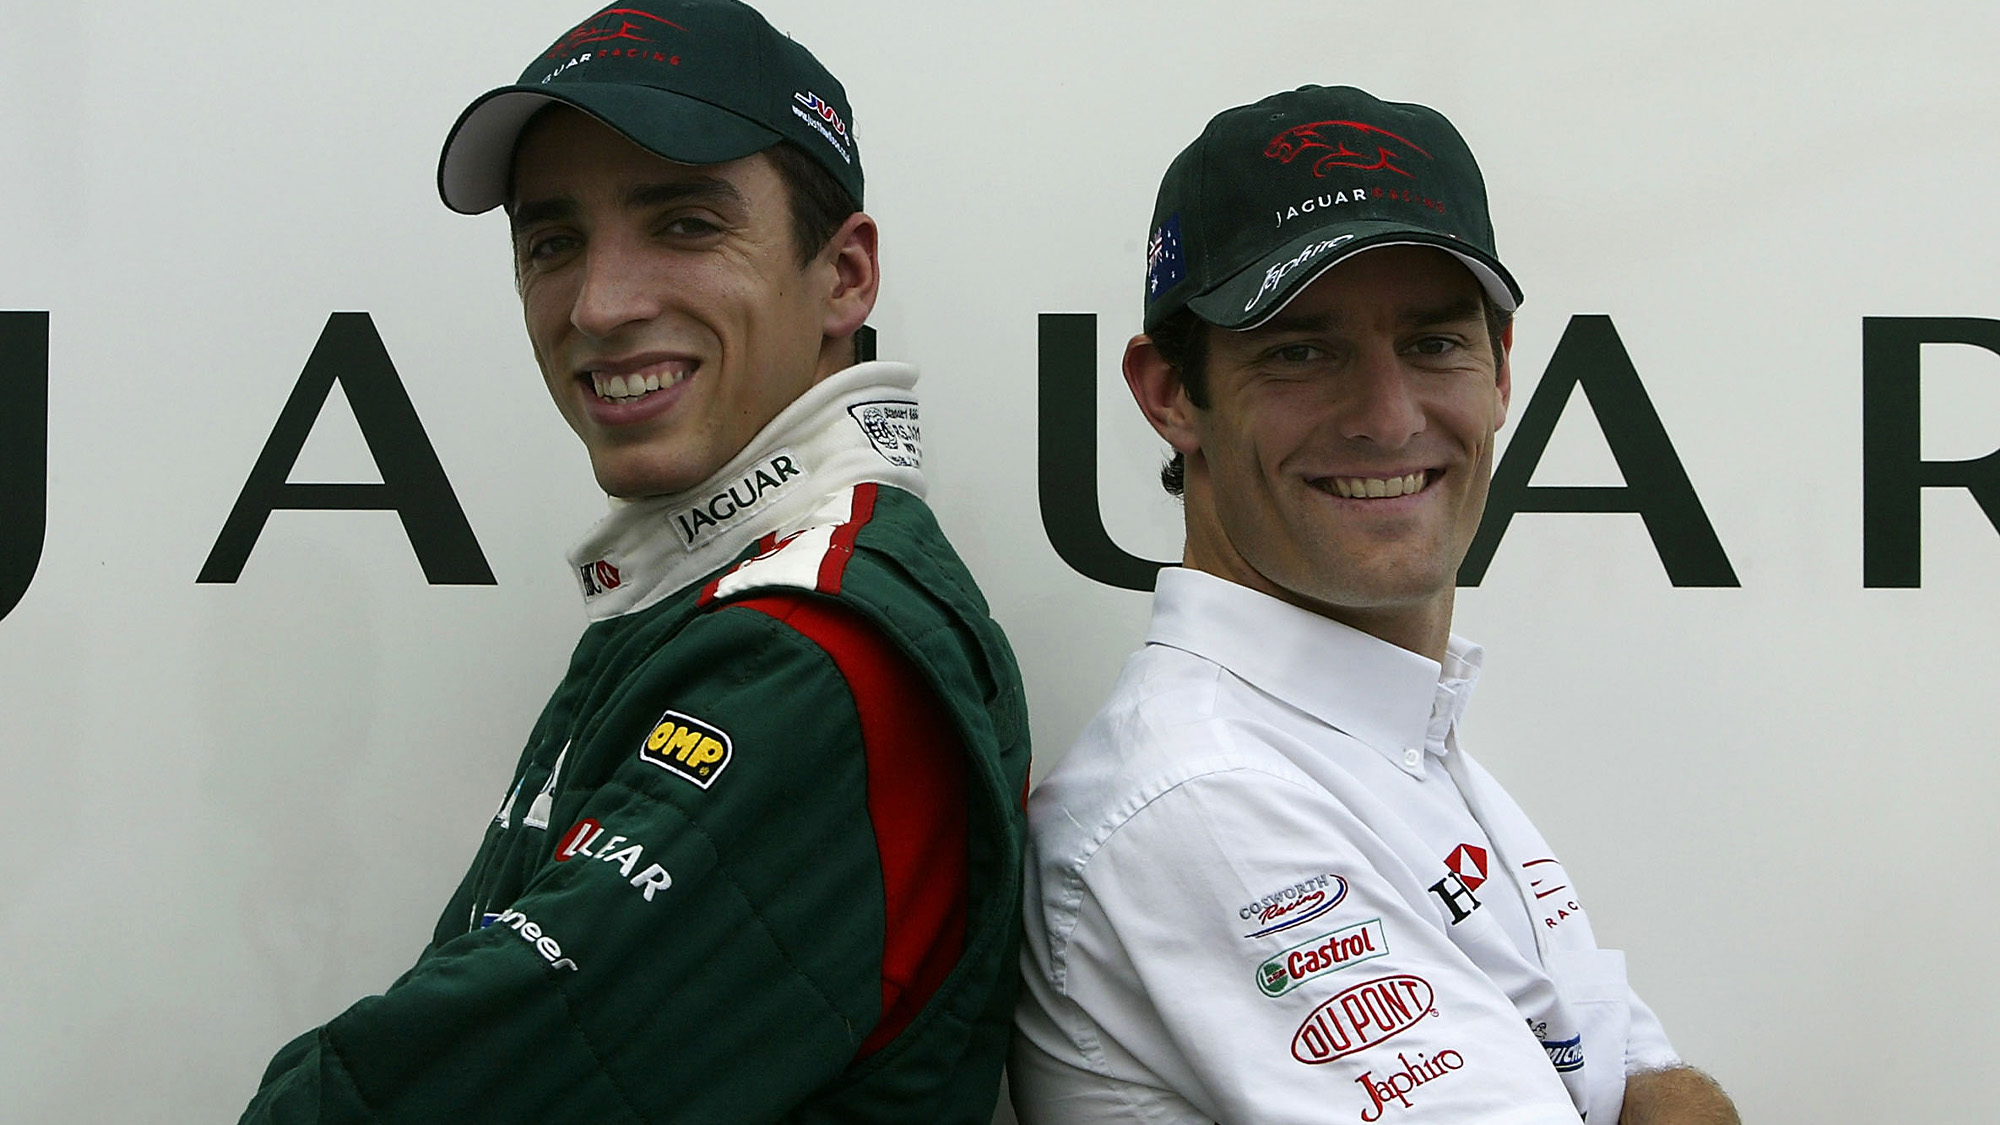 Justin Wilson and Mark Webber pose for a Jaguar F1 team photo in 2003